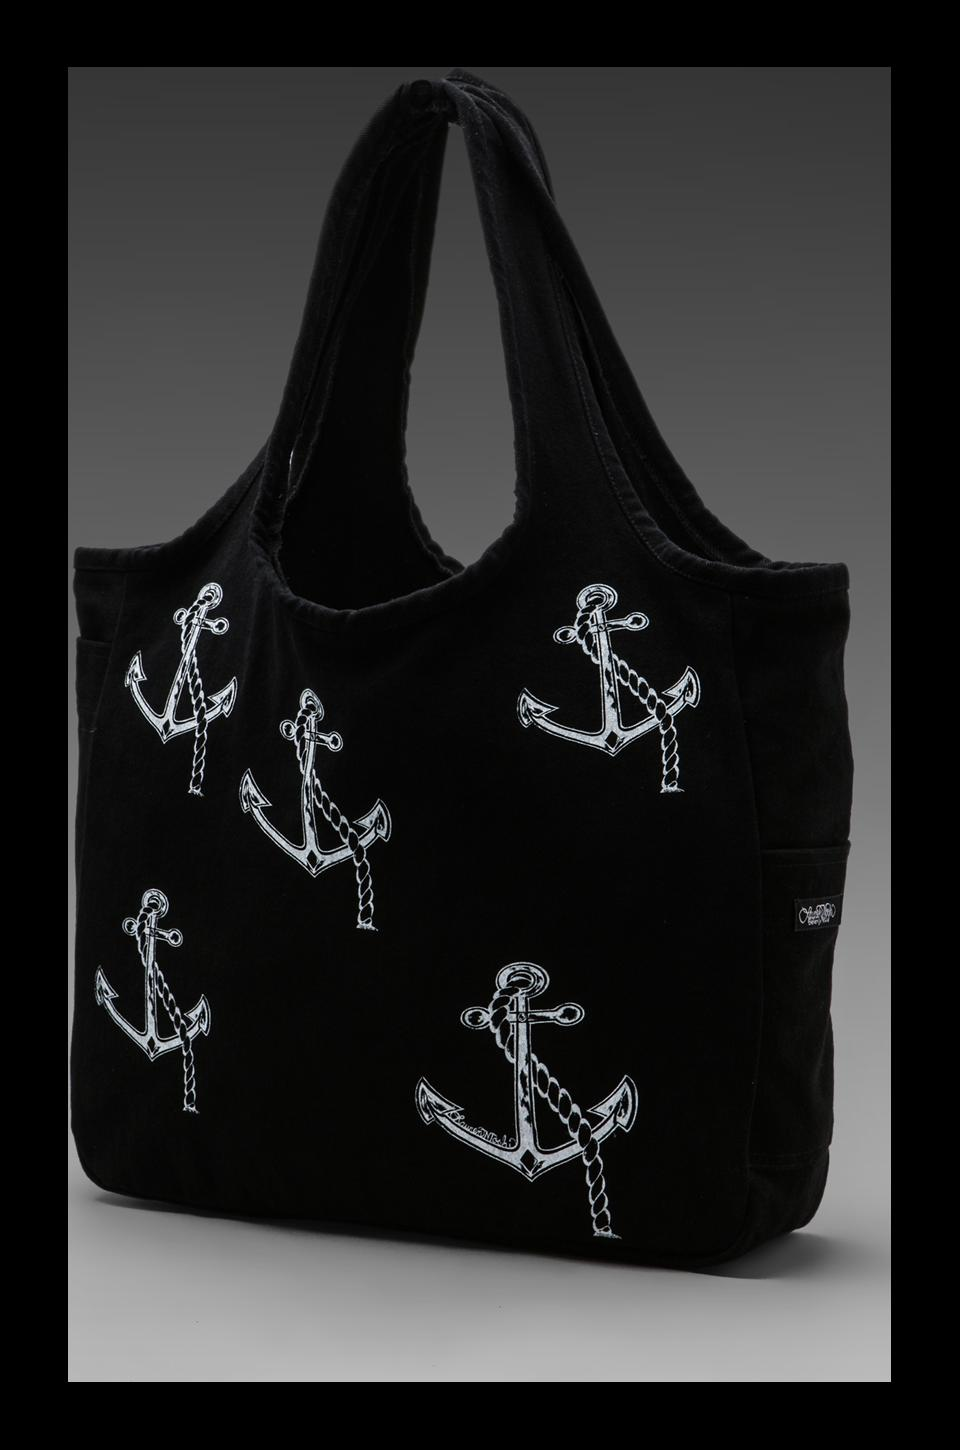 Lauren Moshi Taylor Mini Anchors Tote Bag in Black